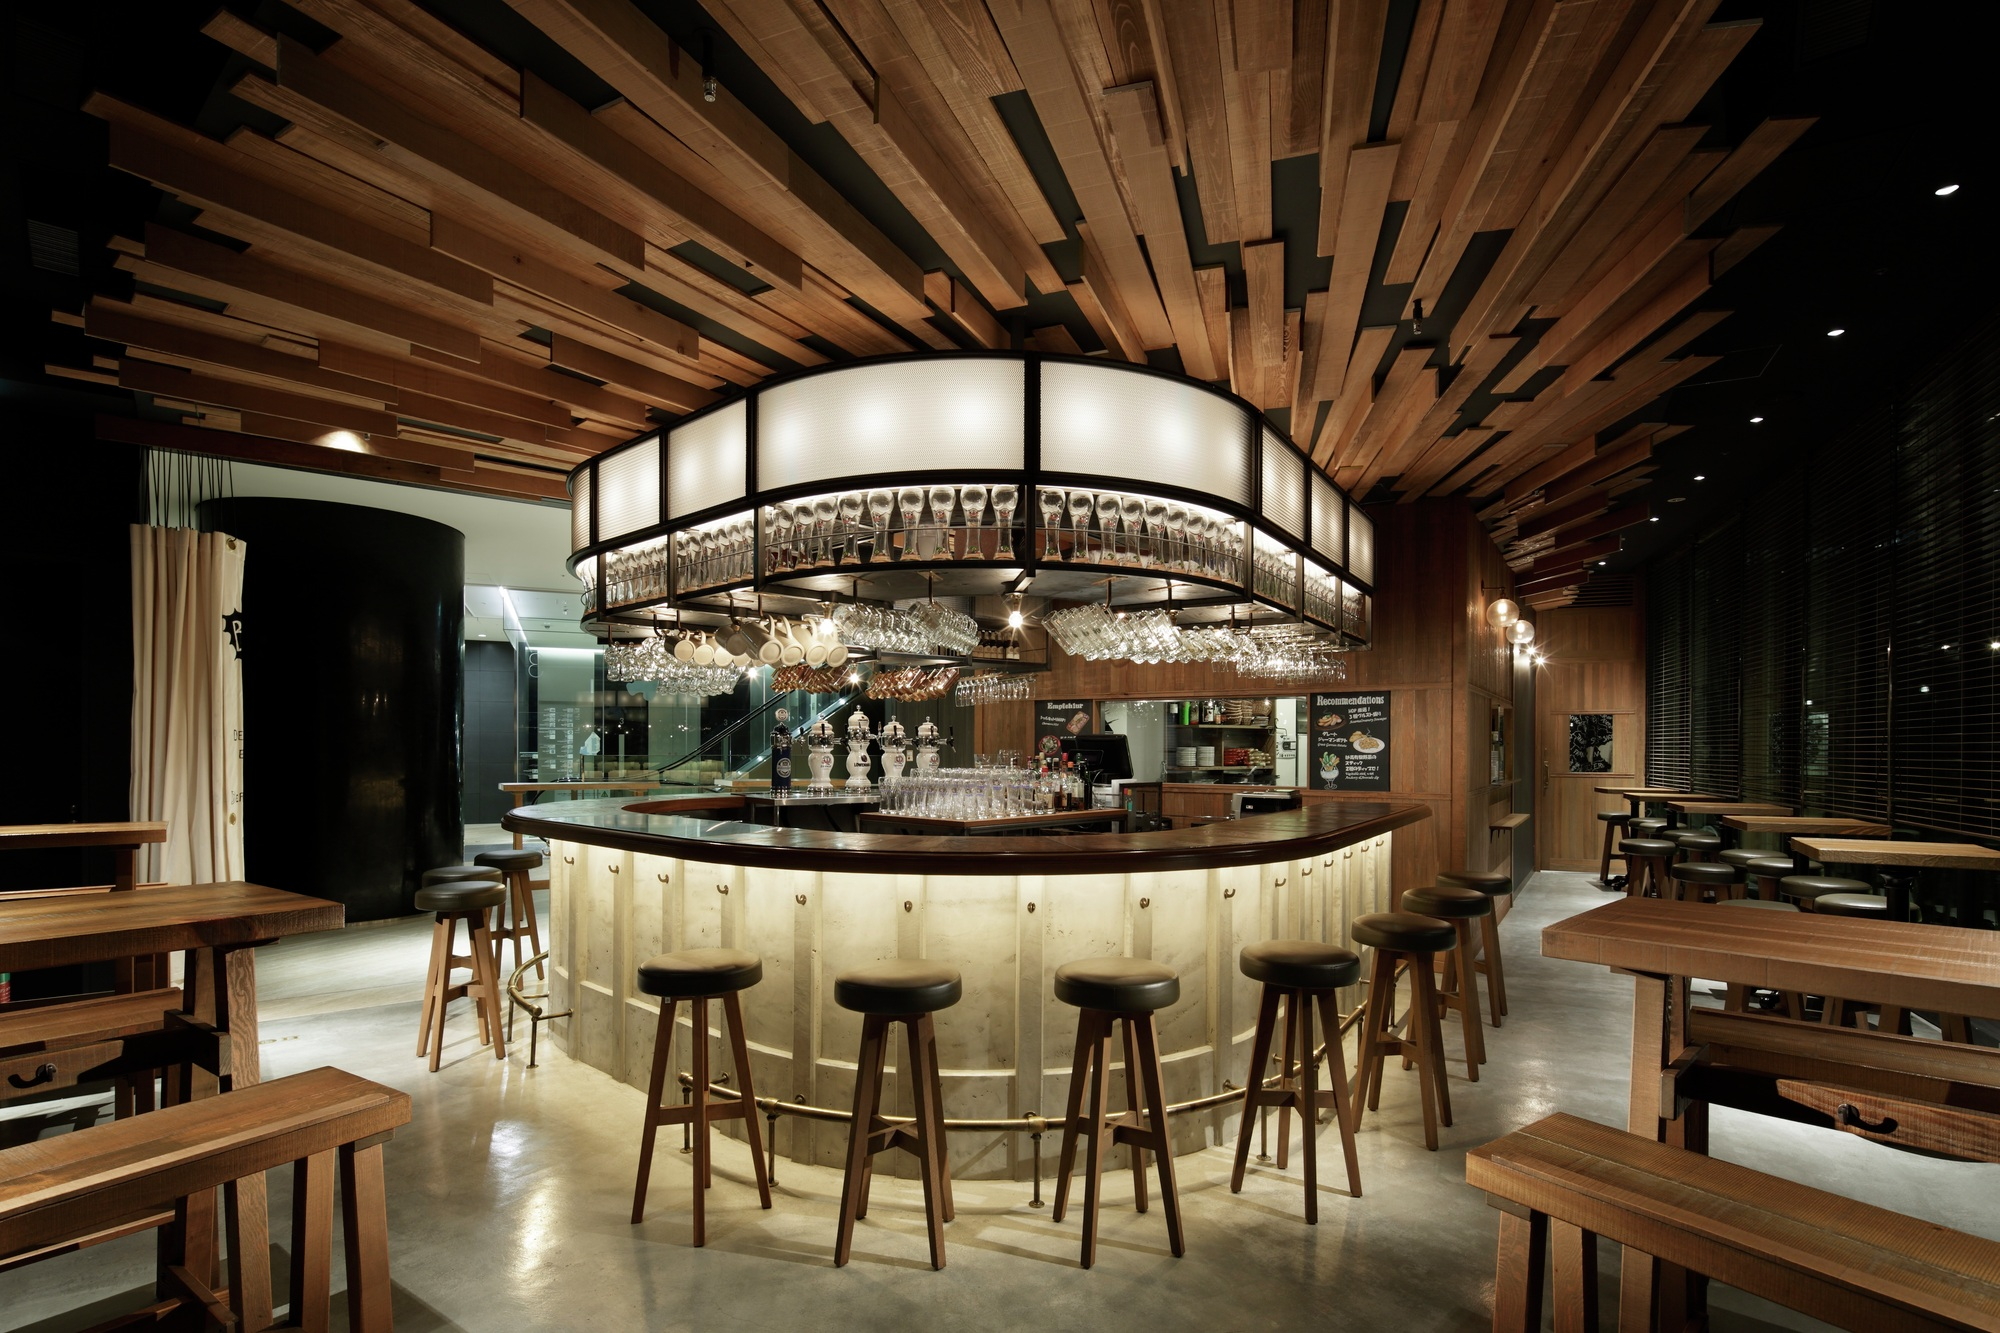 image courtesy of the restaurant bar design awards